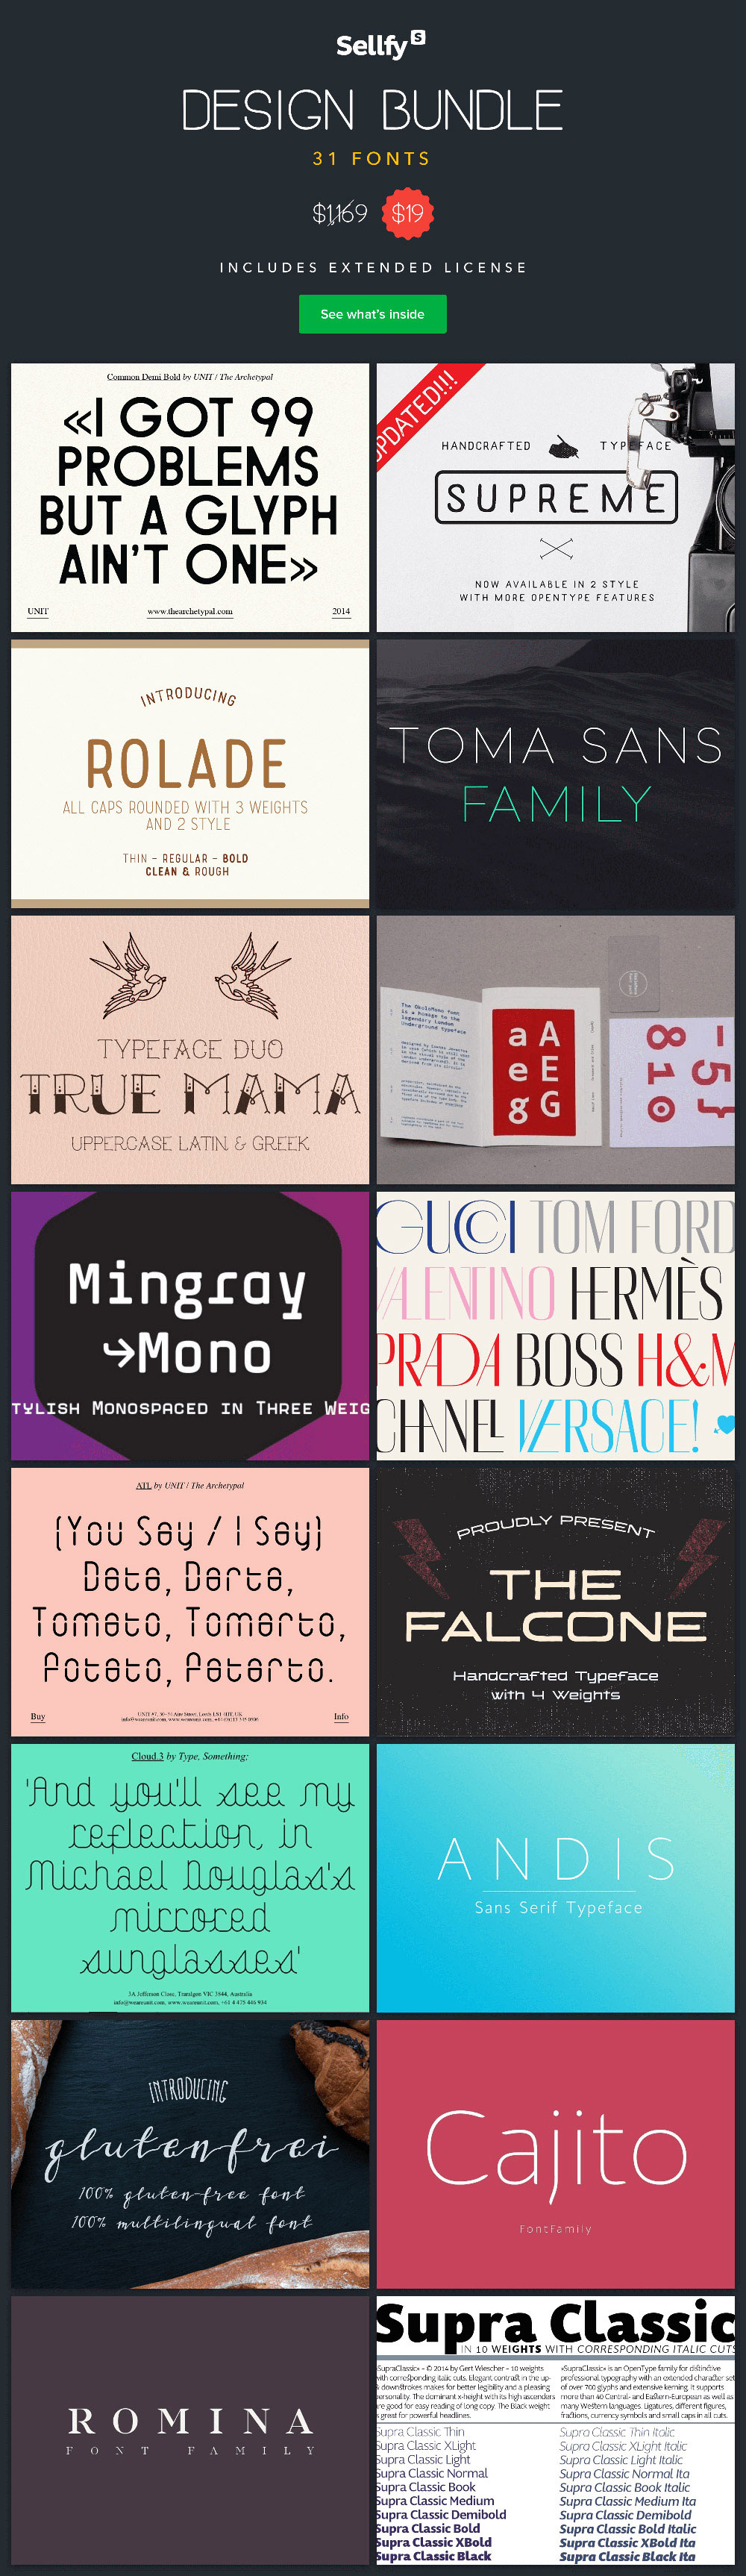 Sellfy Design Bundle: 31 Outstanding Fonts